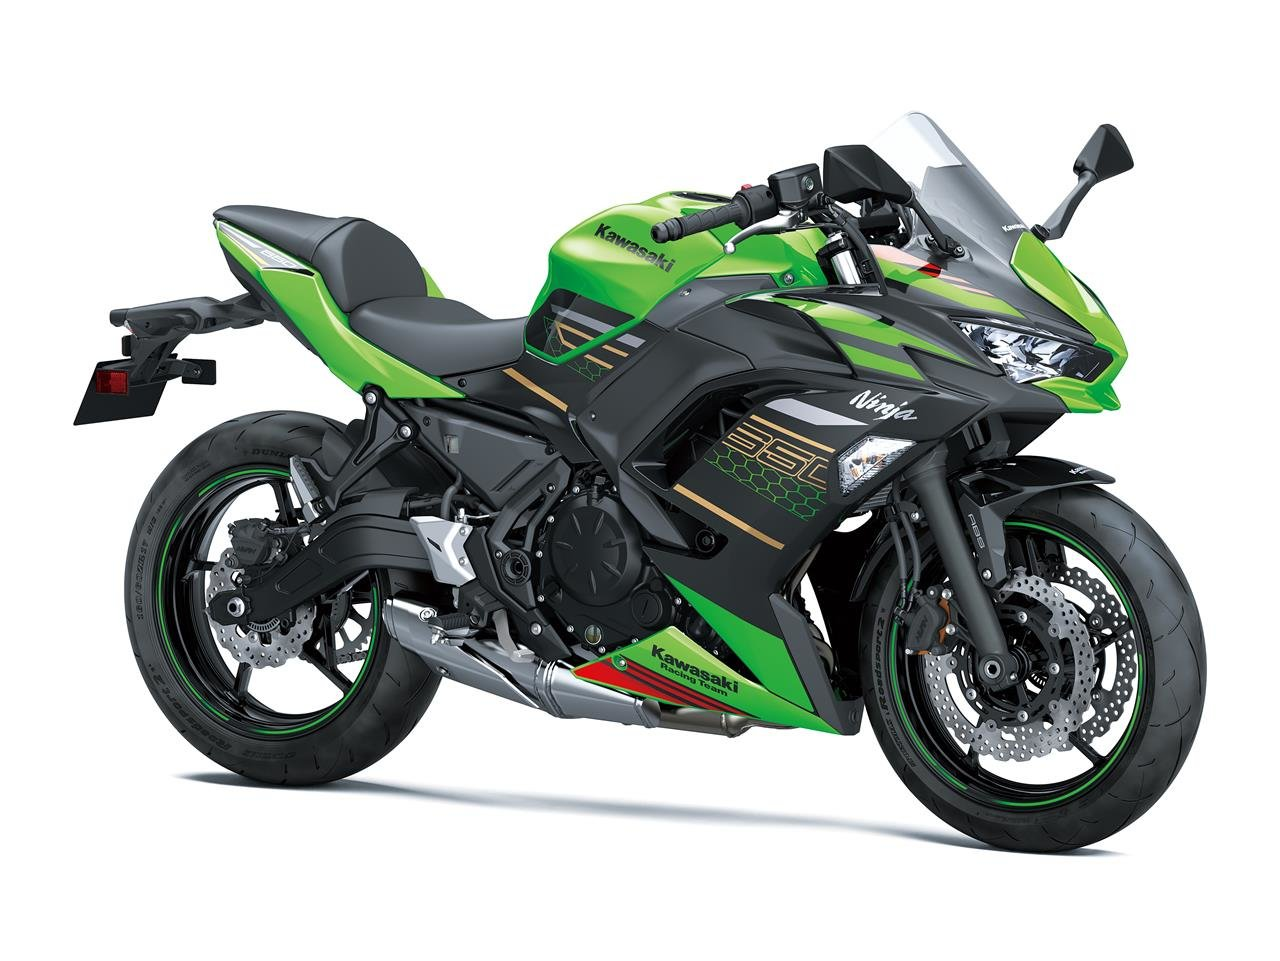 New 2020 Kawasaki Ninja 650 KRT*FREE DELIVERY & 3YR 0% APR* For Sale (picture 1 of 6)